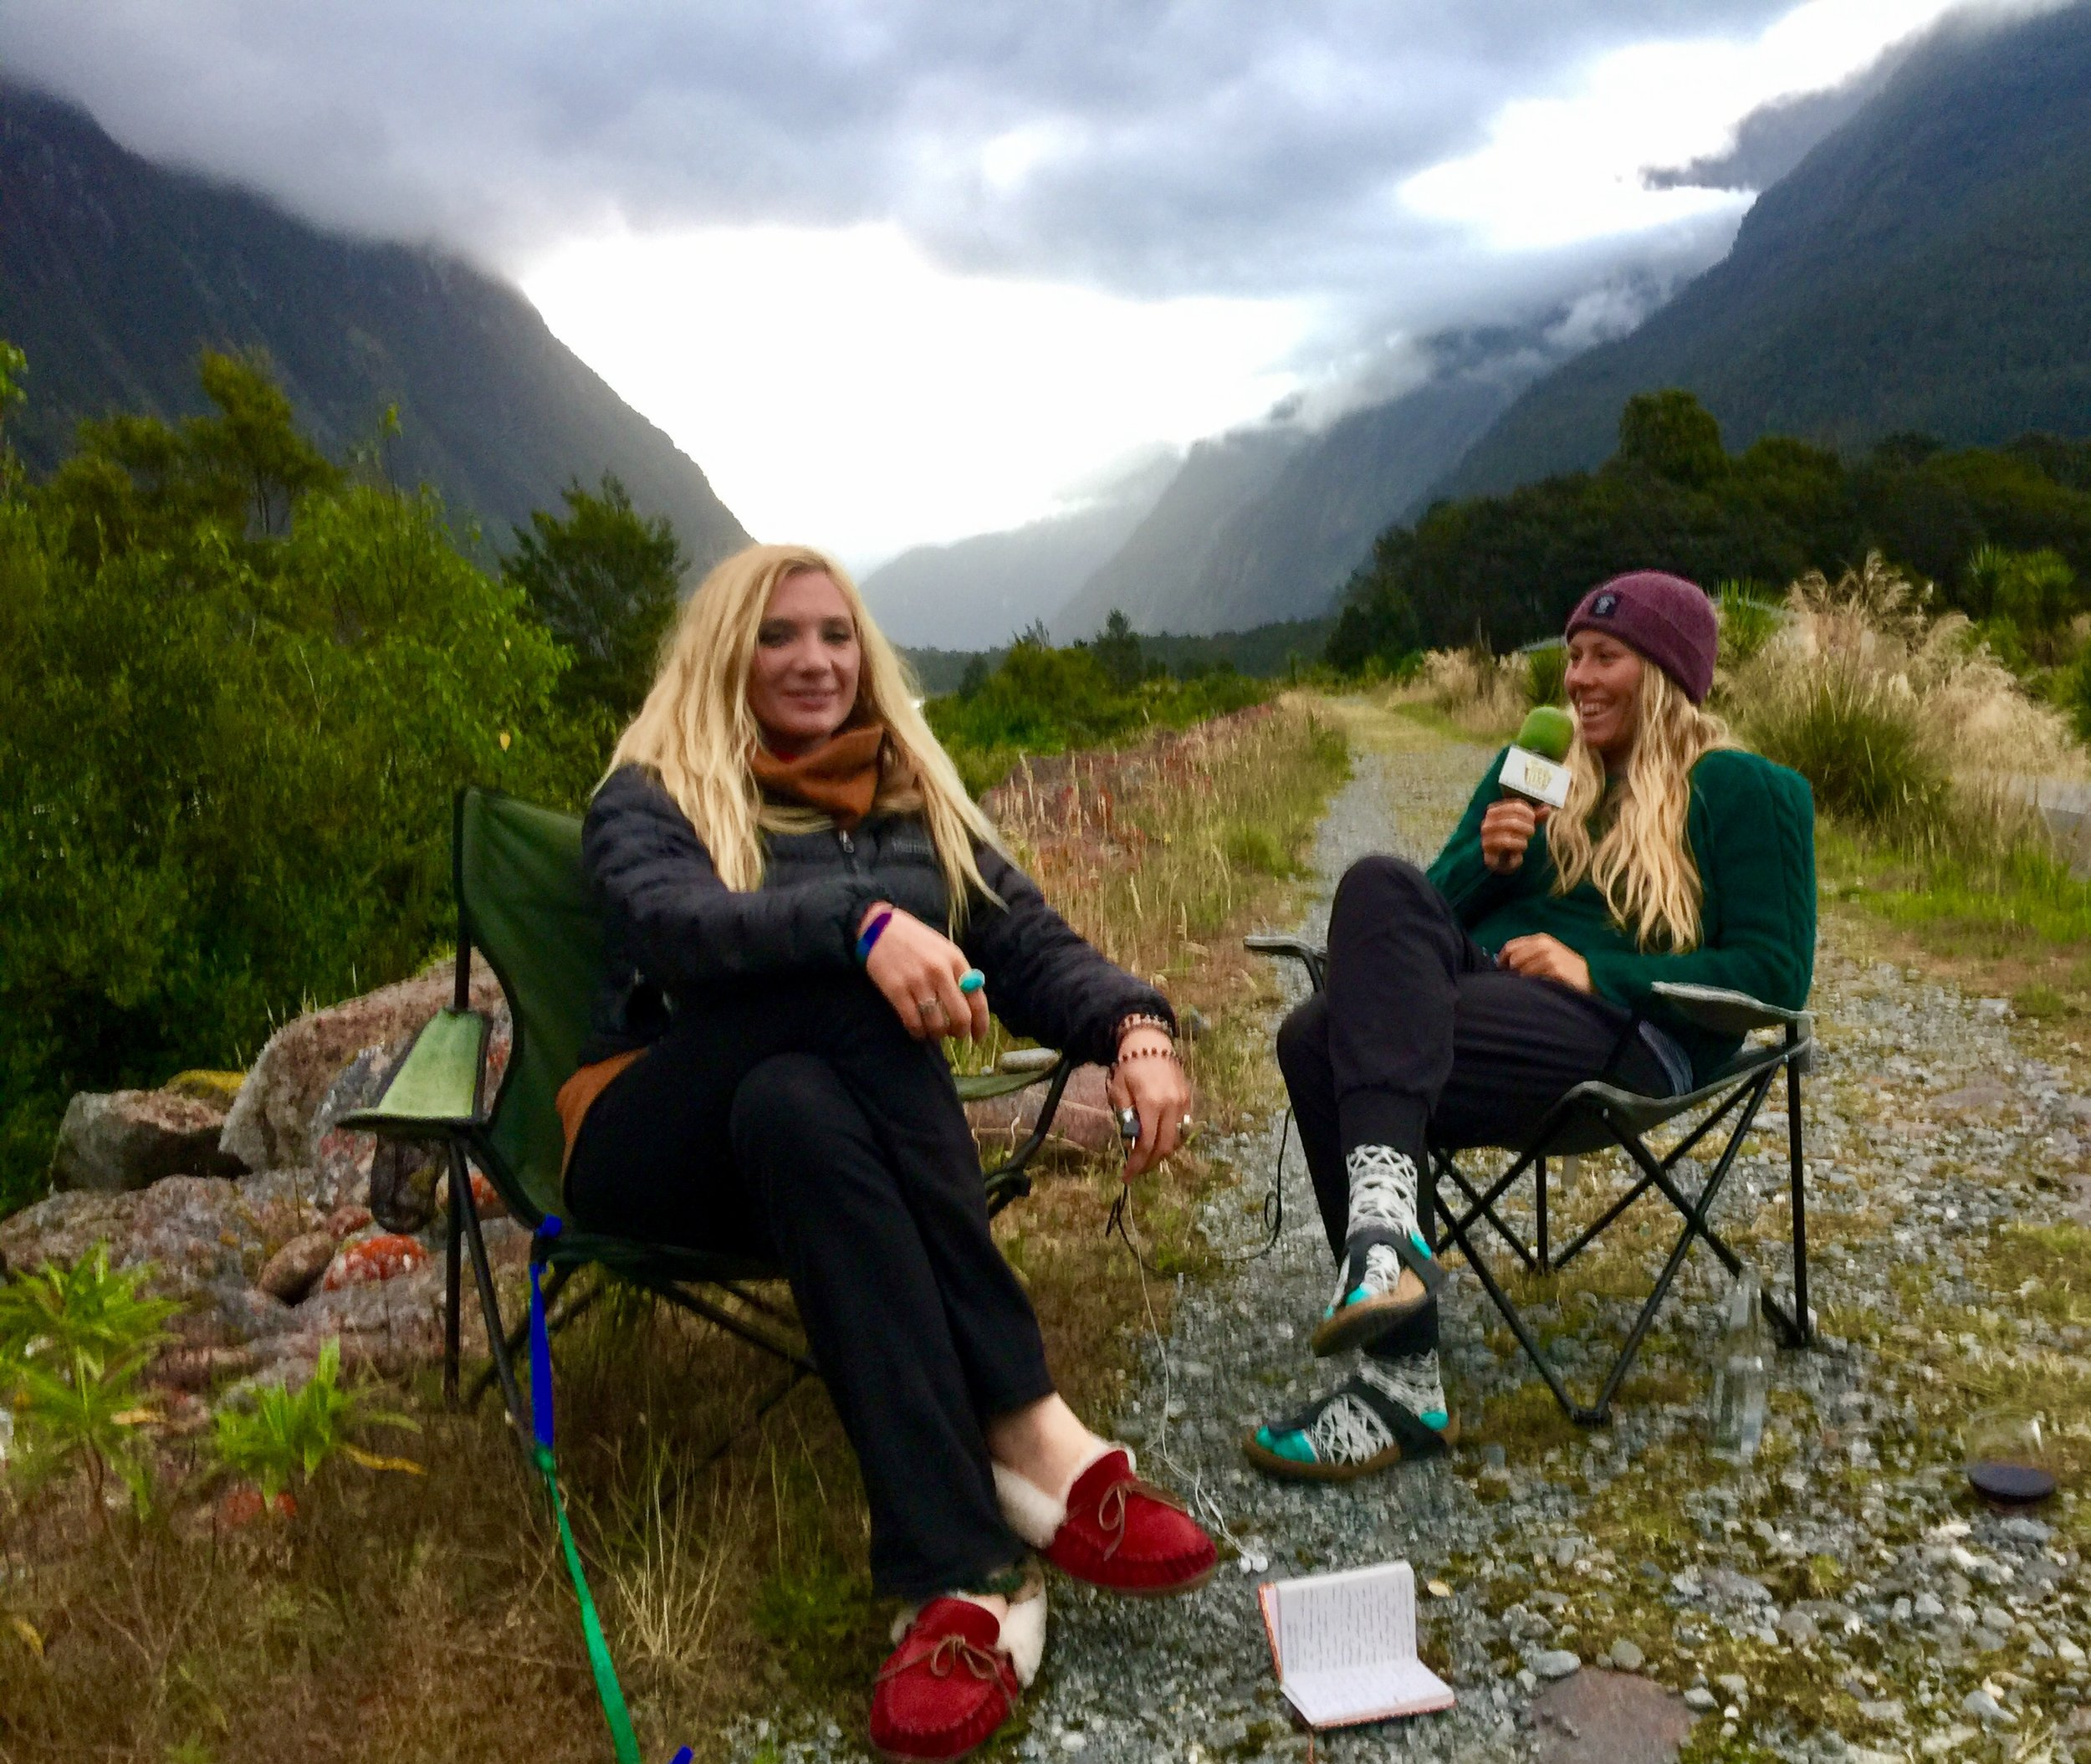 Mandela interviewing fellow sea kayak guide, Olive Butcher, on location in Fiordland National Park, New Zealand.